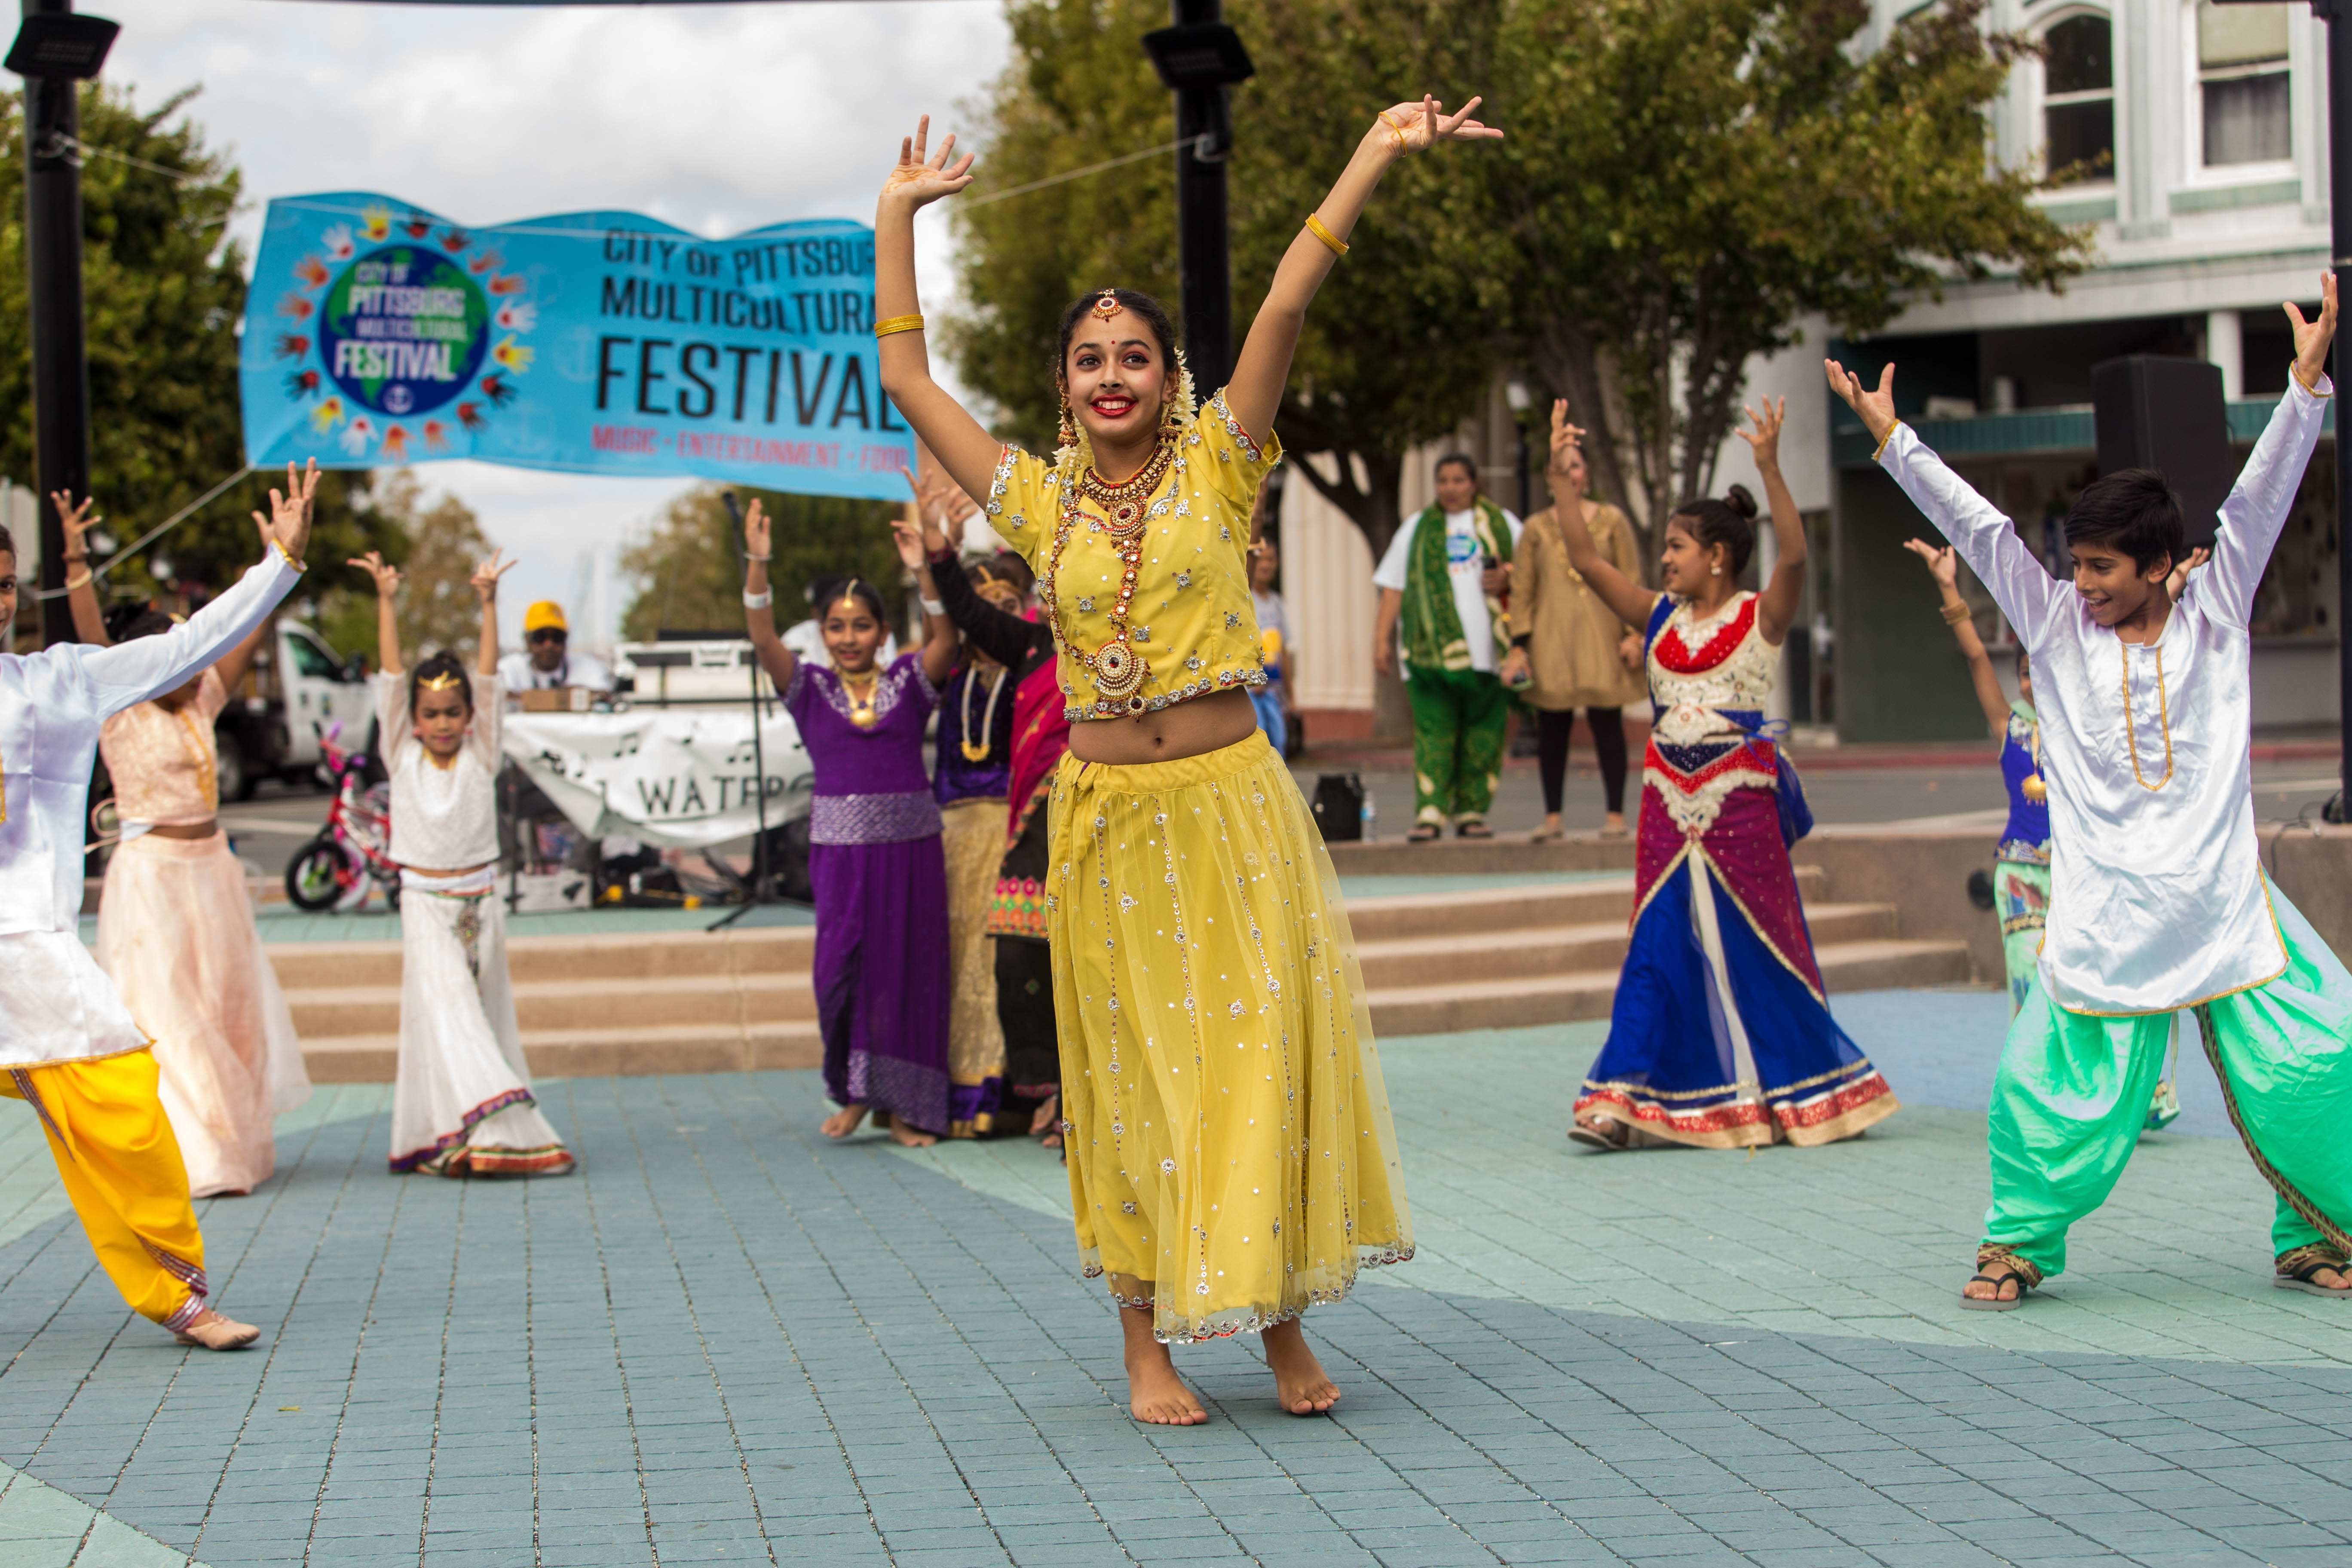 CITY_PITTSBURG_MULTICULTURAL_OCTOBER_2016 (675)